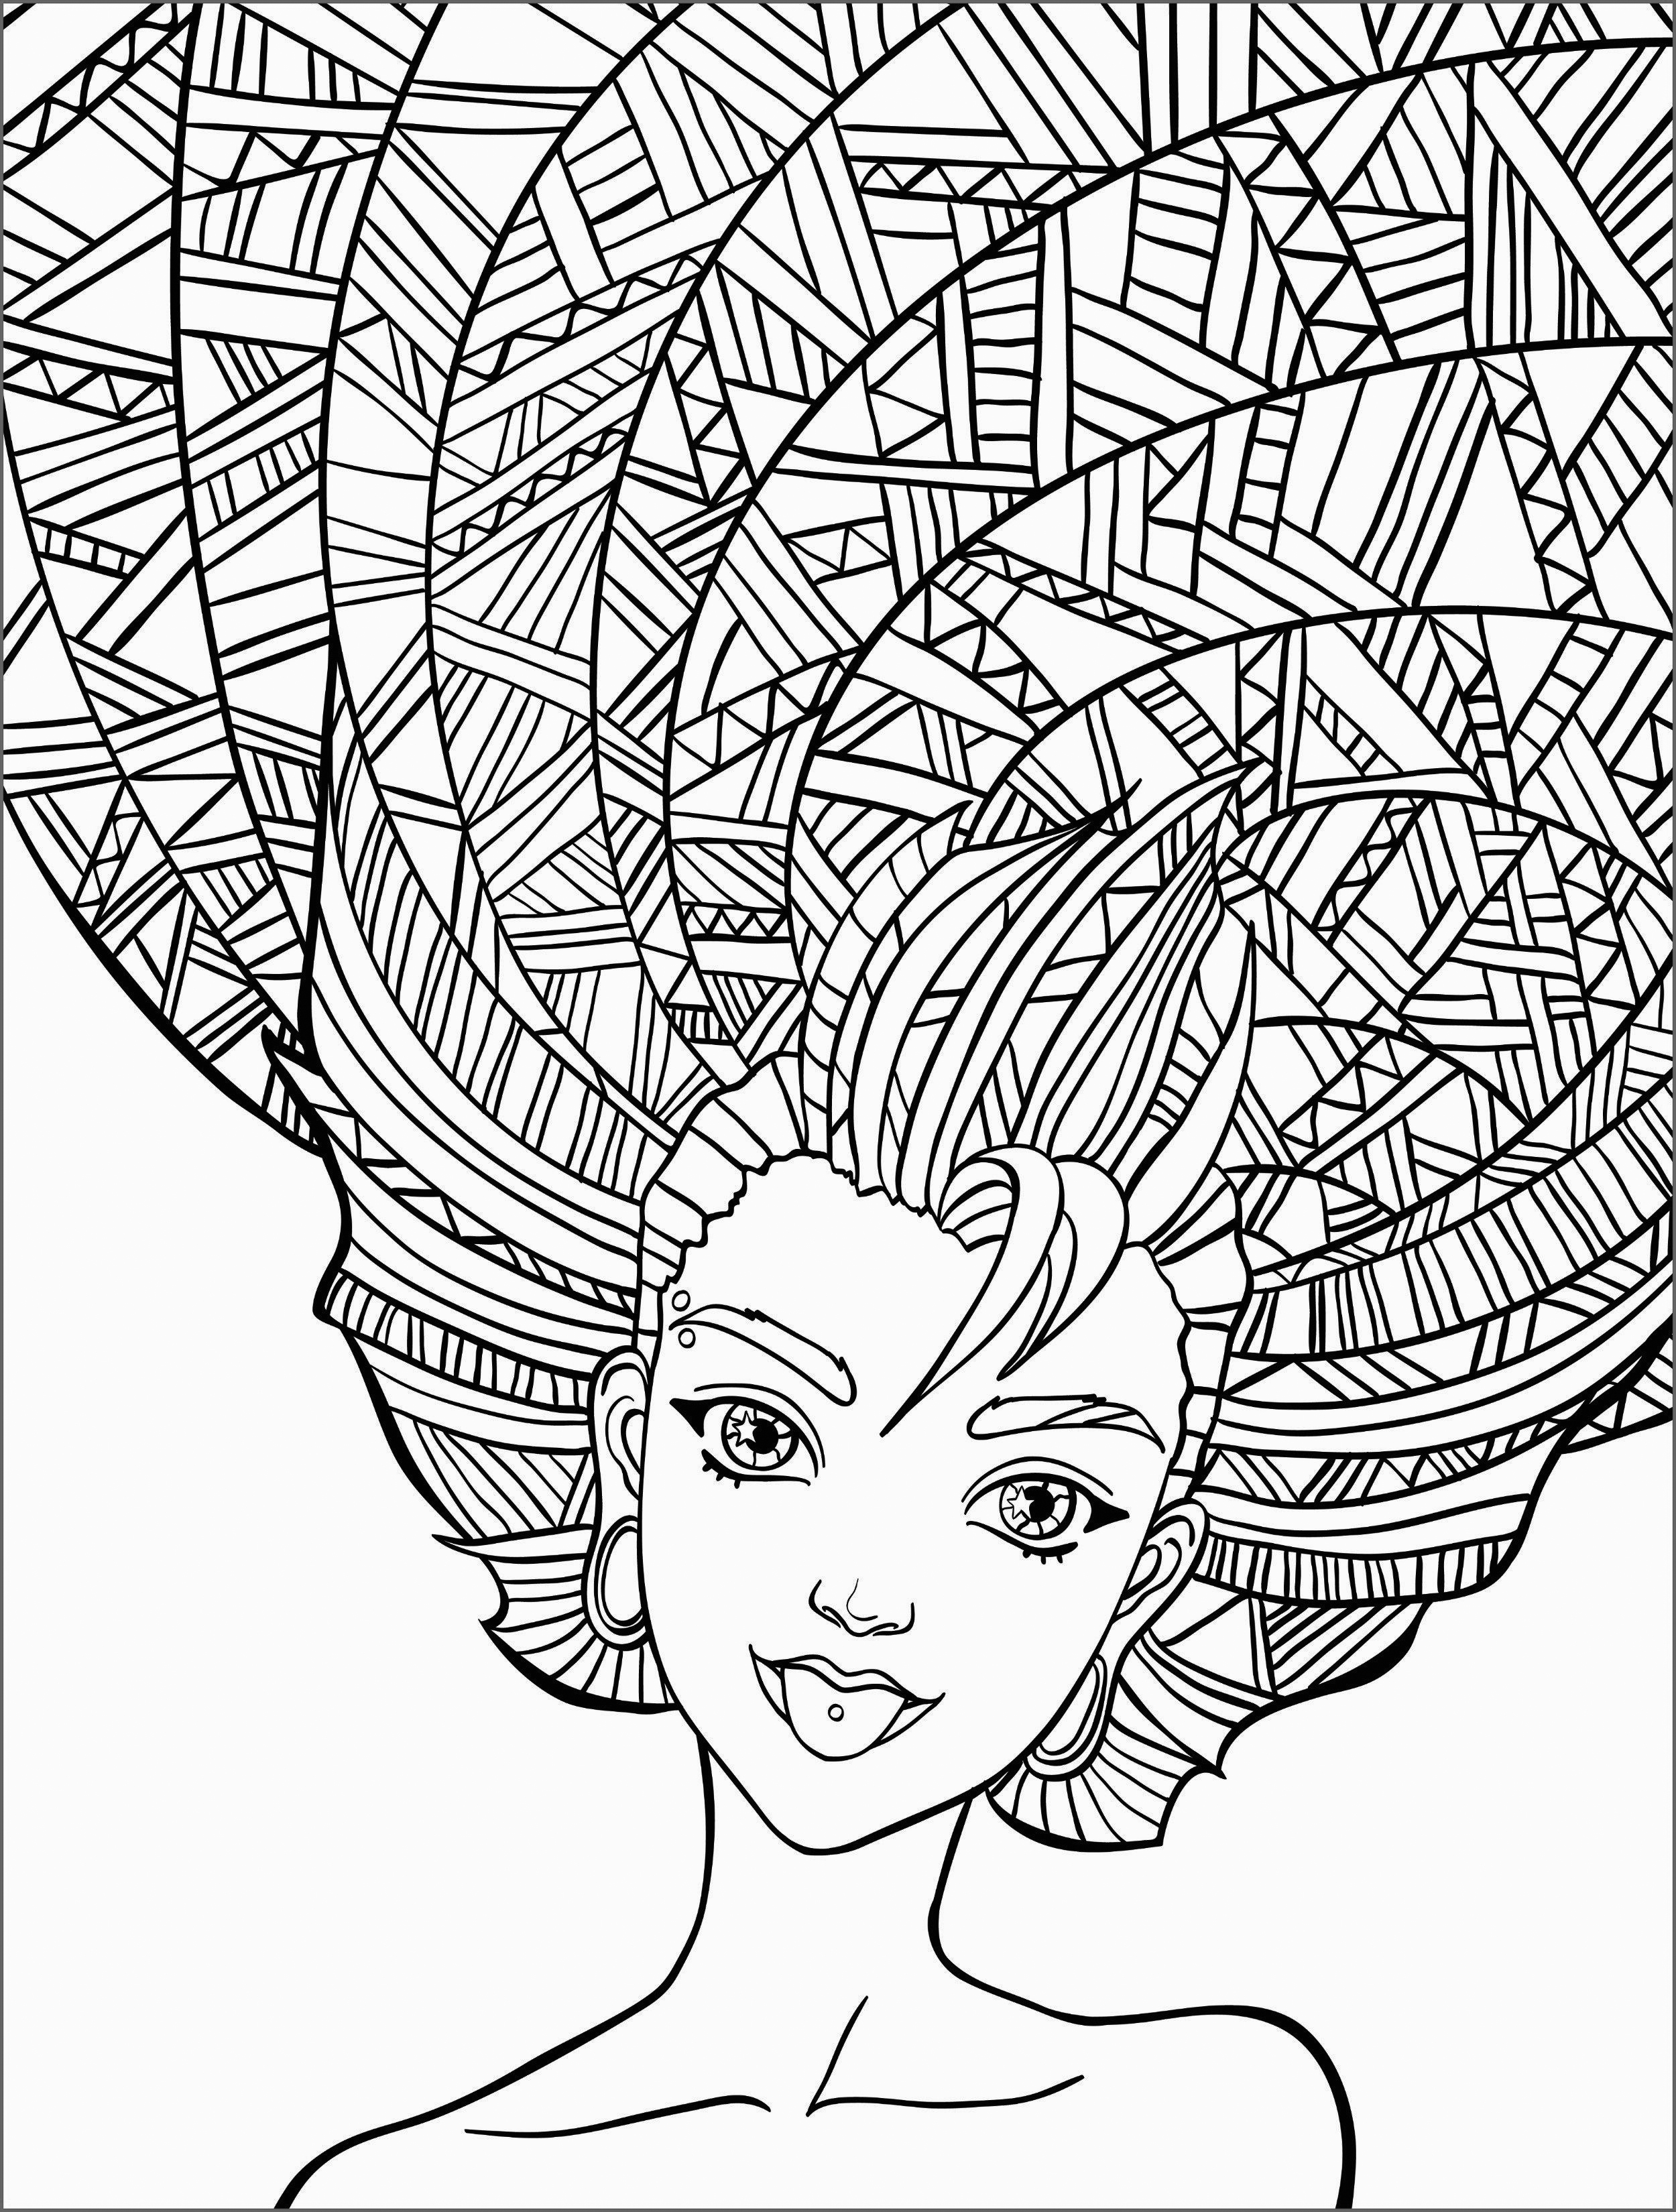 adult coloring page i am loved adult coloring page inspiring message coloring adult page coloring